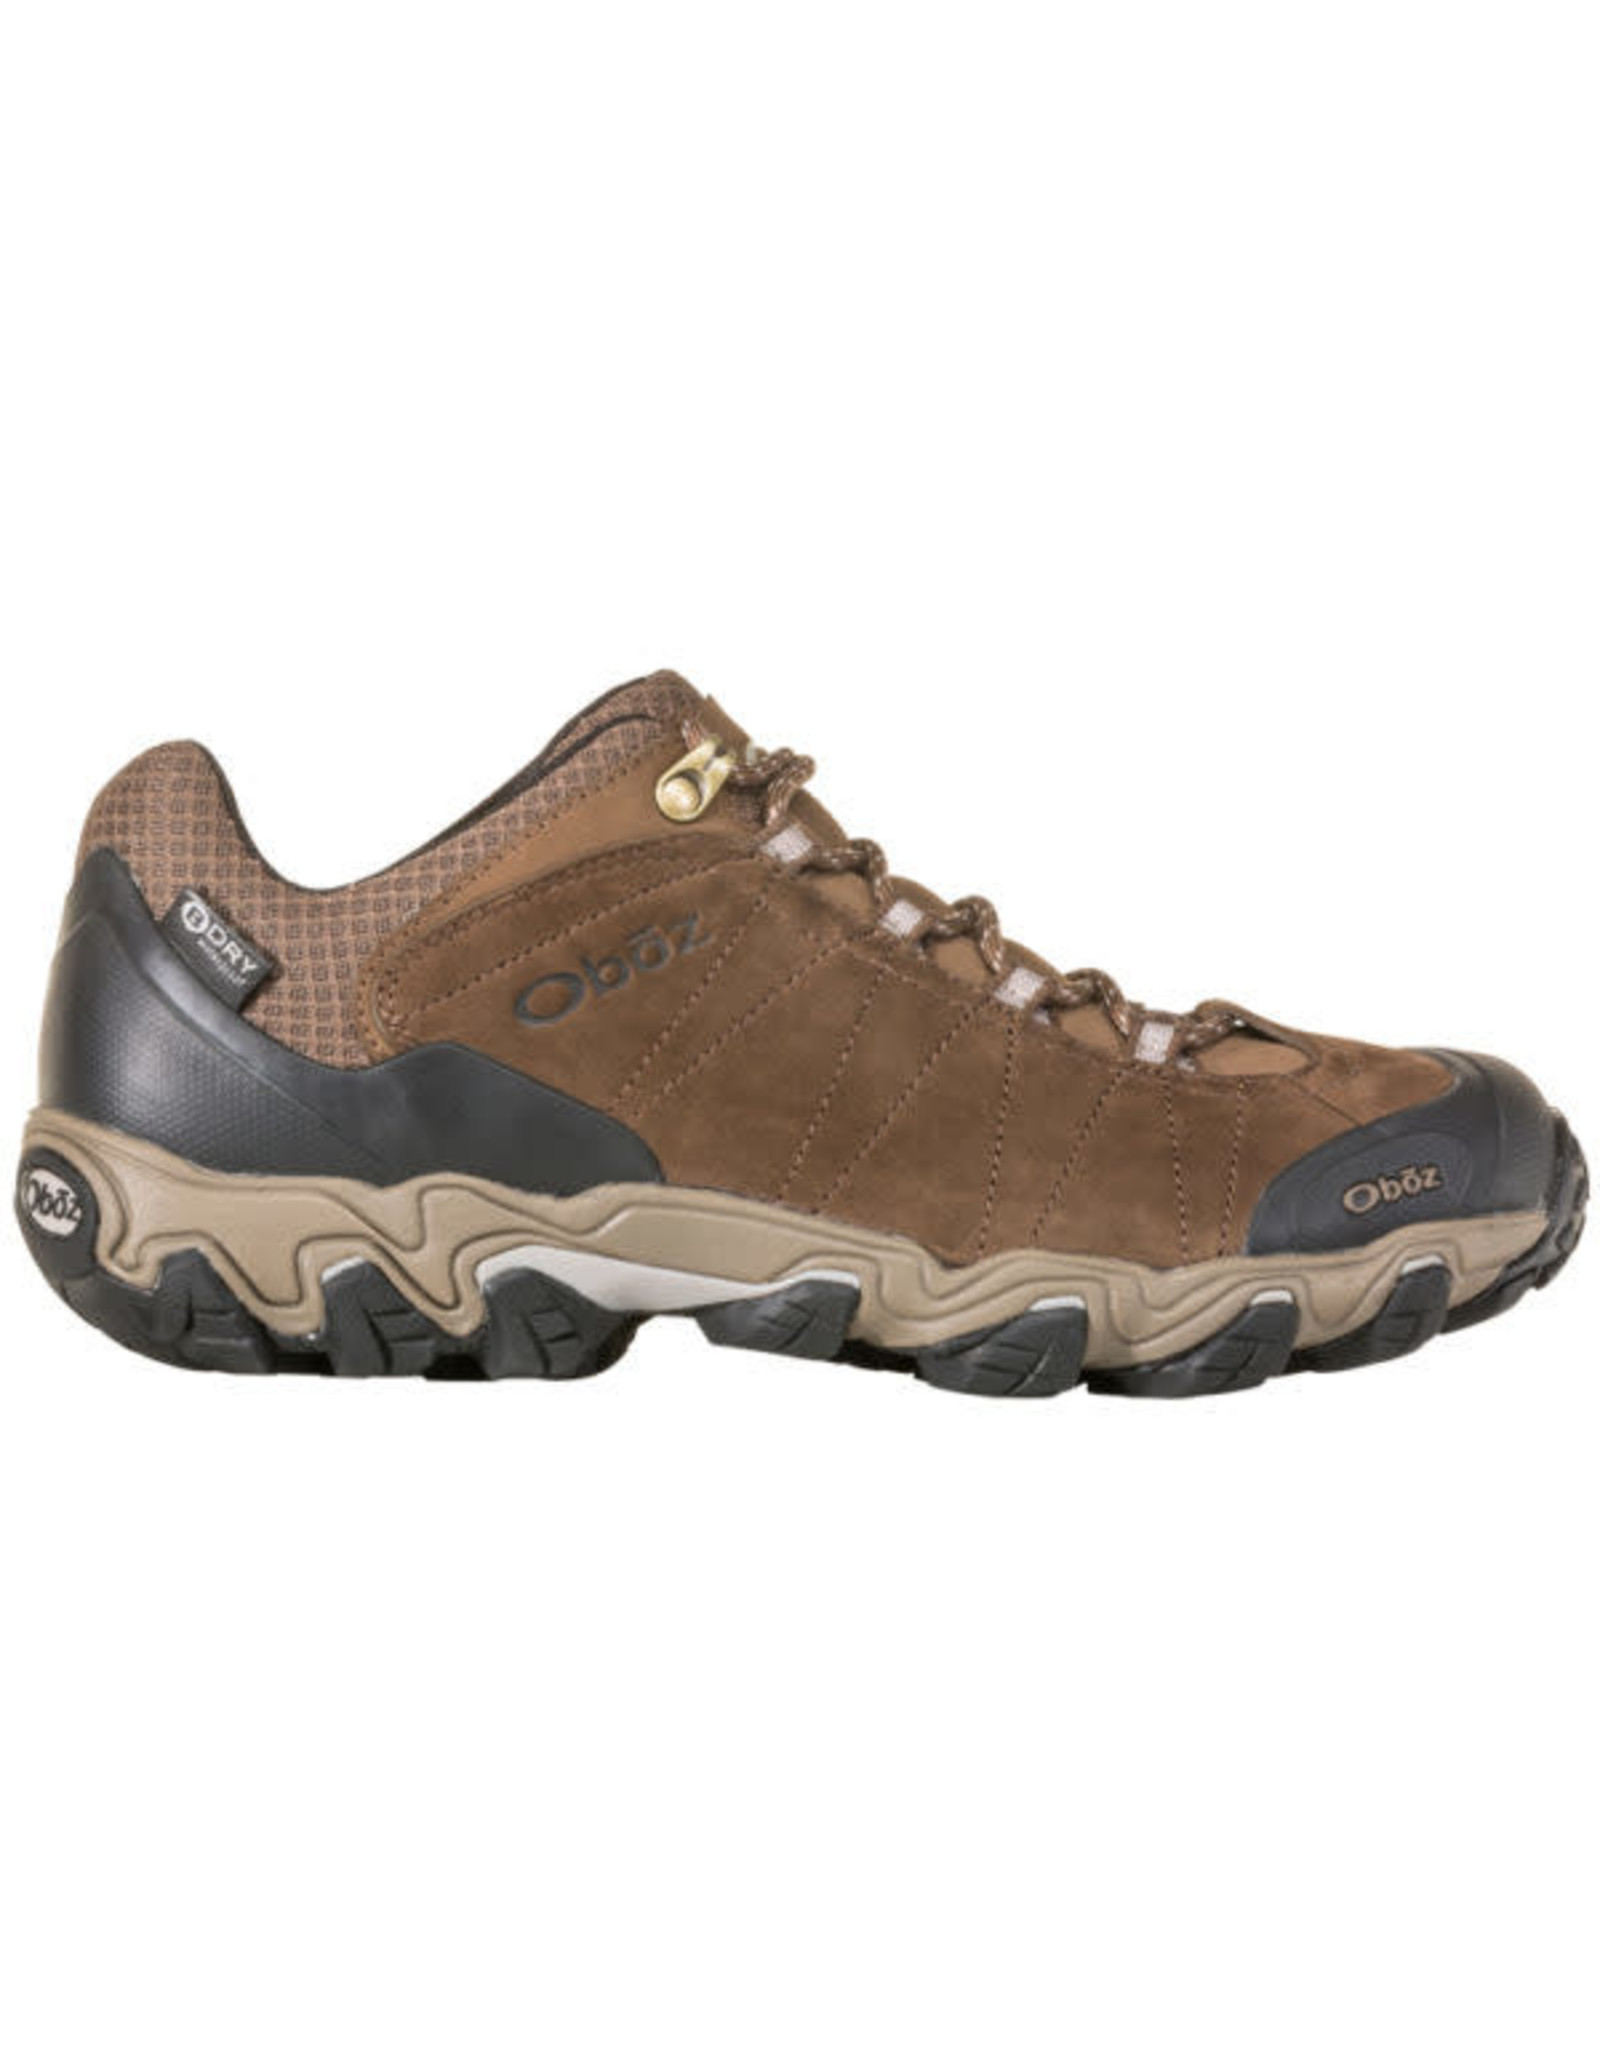 Oboz Men's Bridger Low Waterproof